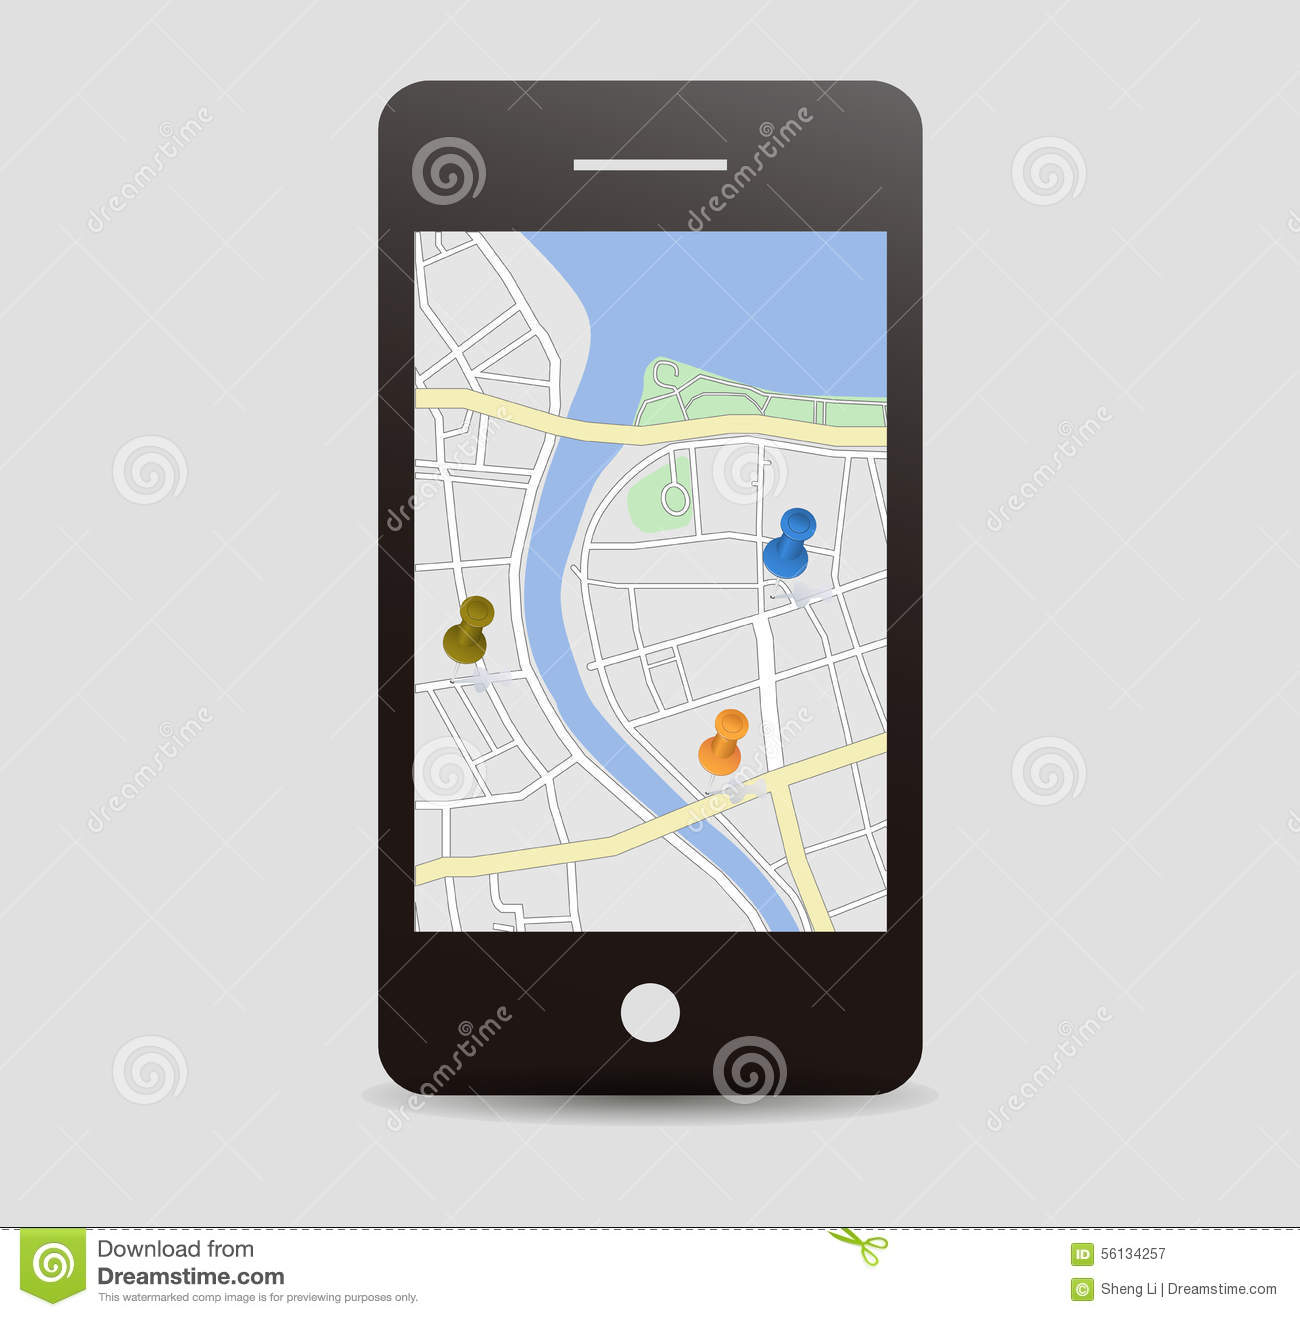 City Map With Pins Mobile App Vector Image 56134257 – Travel Map With Pins App